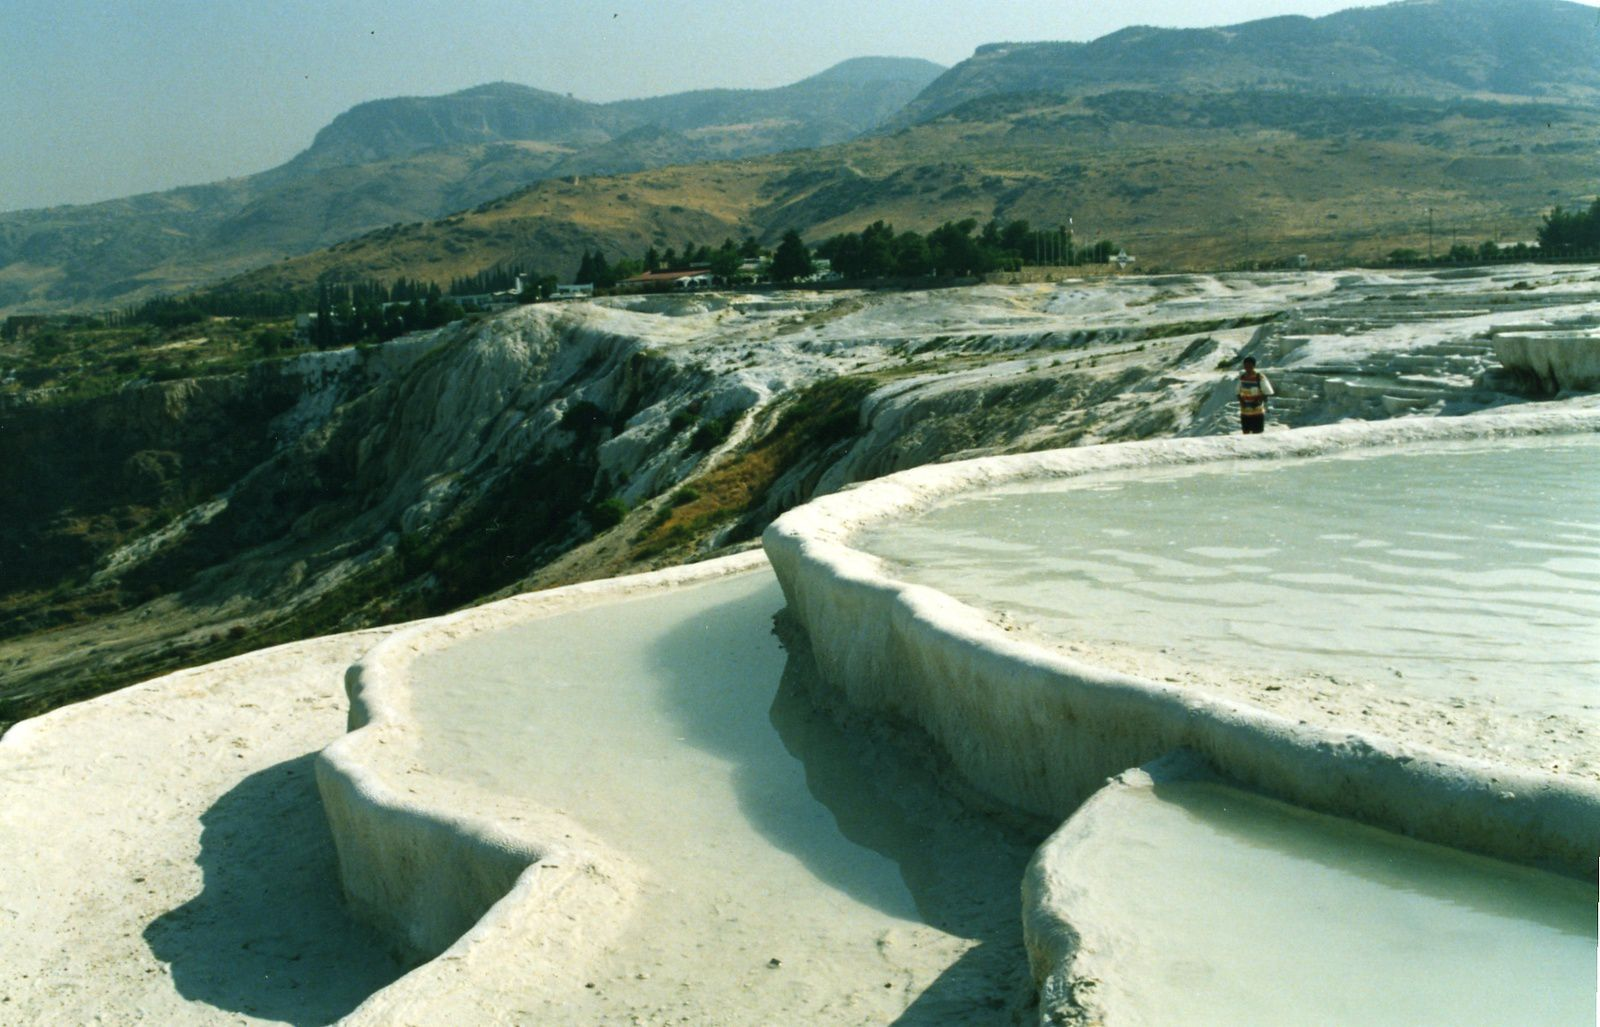 Pamukkale - Travertine terraces and ponds